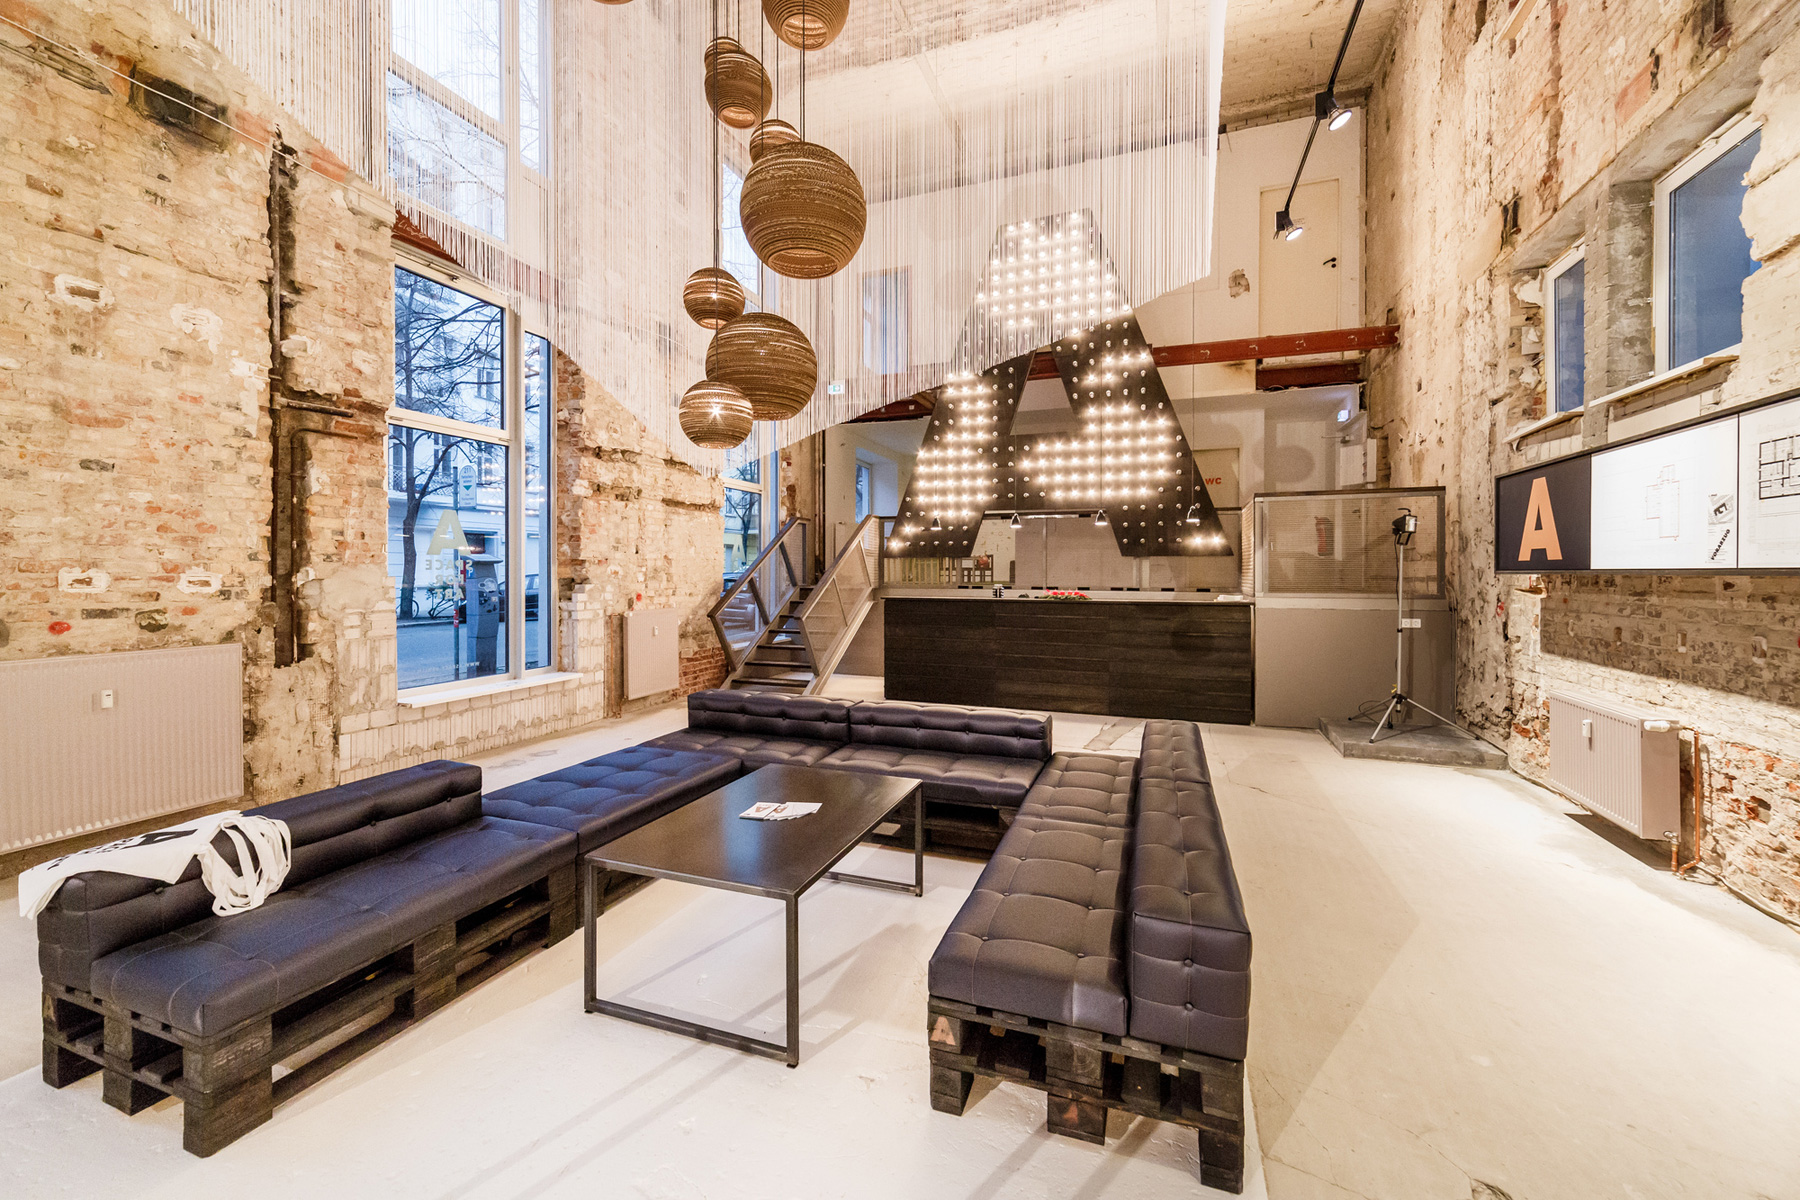 Space - Temporary Show / Plajer & Franz Studio (15)